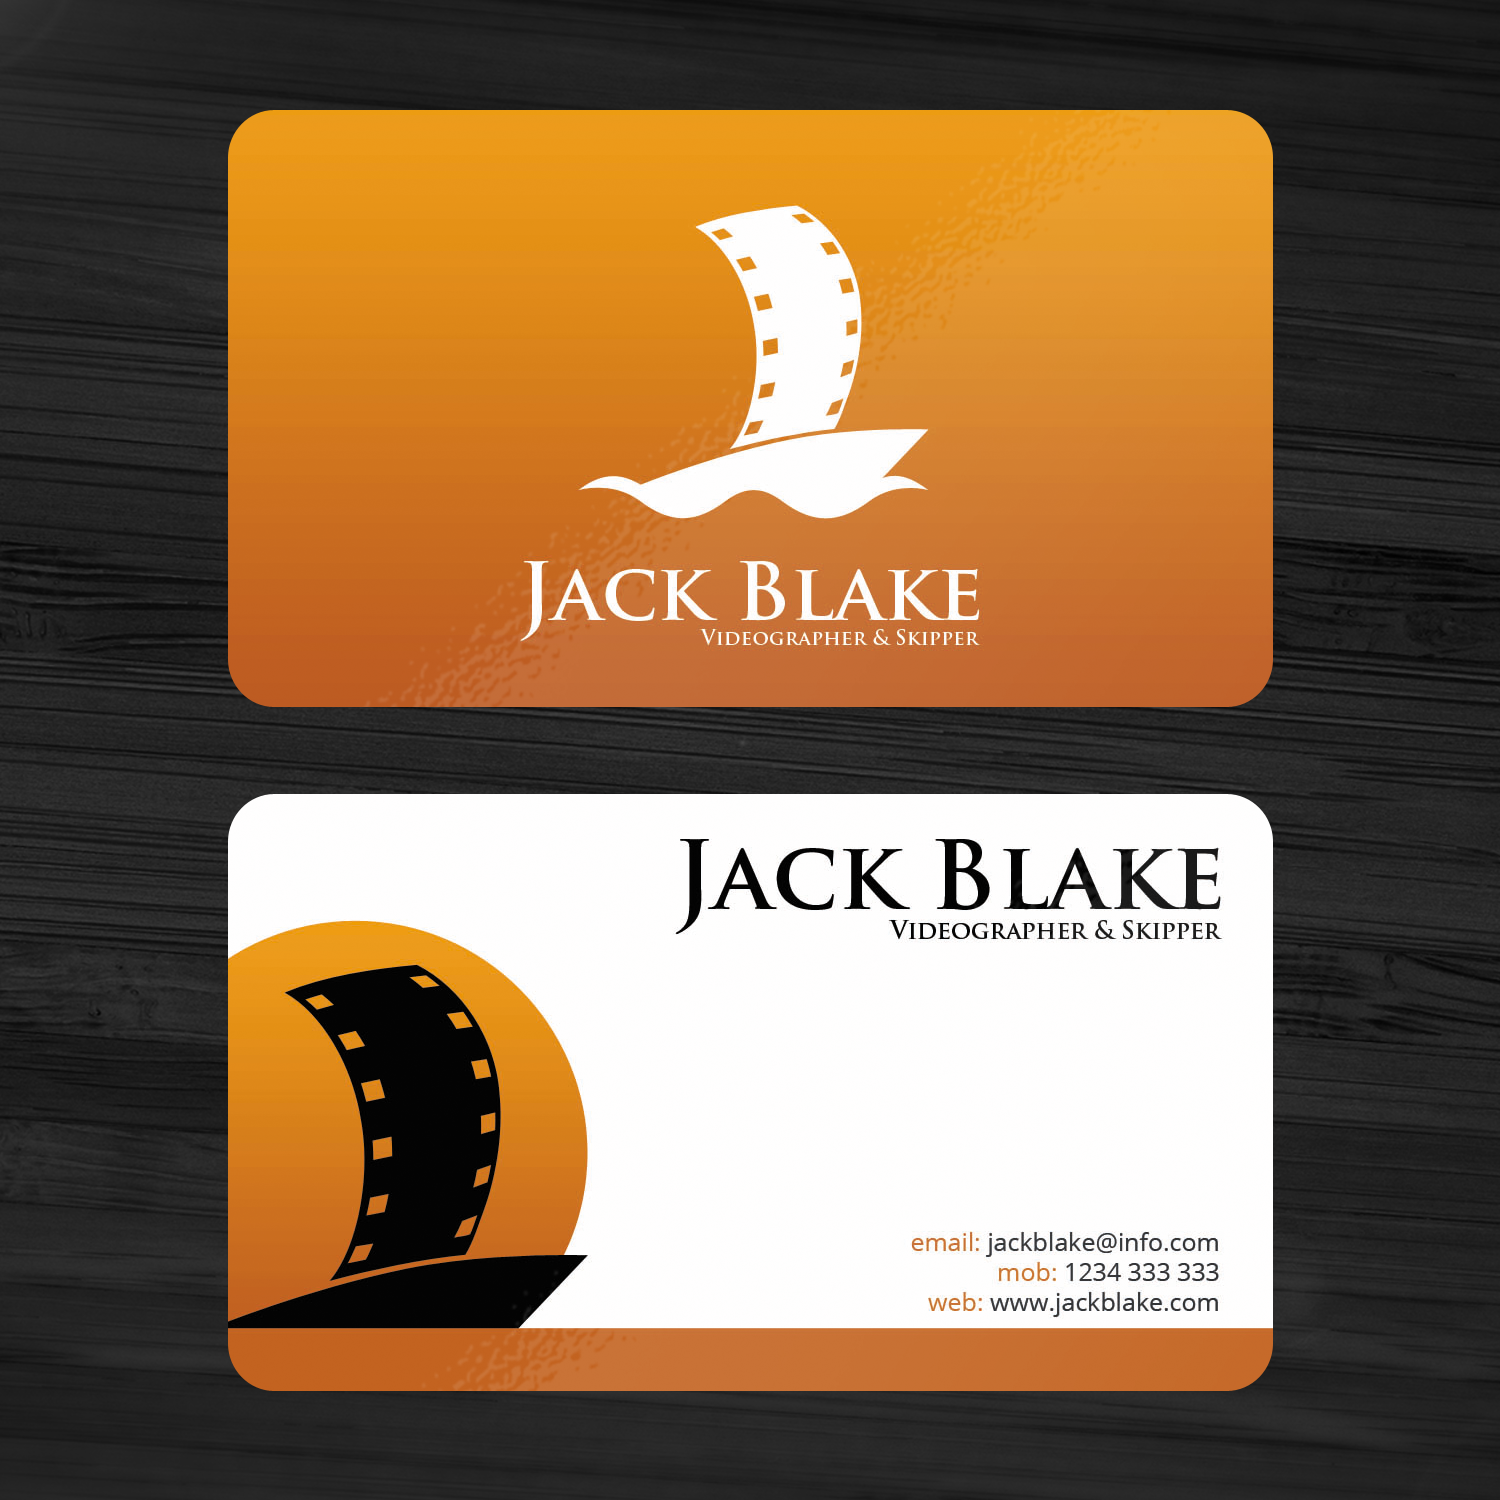 Modern professional videography business card design for the business card design by sanrell for the skipper lifestyle design 12764946 colourmoves